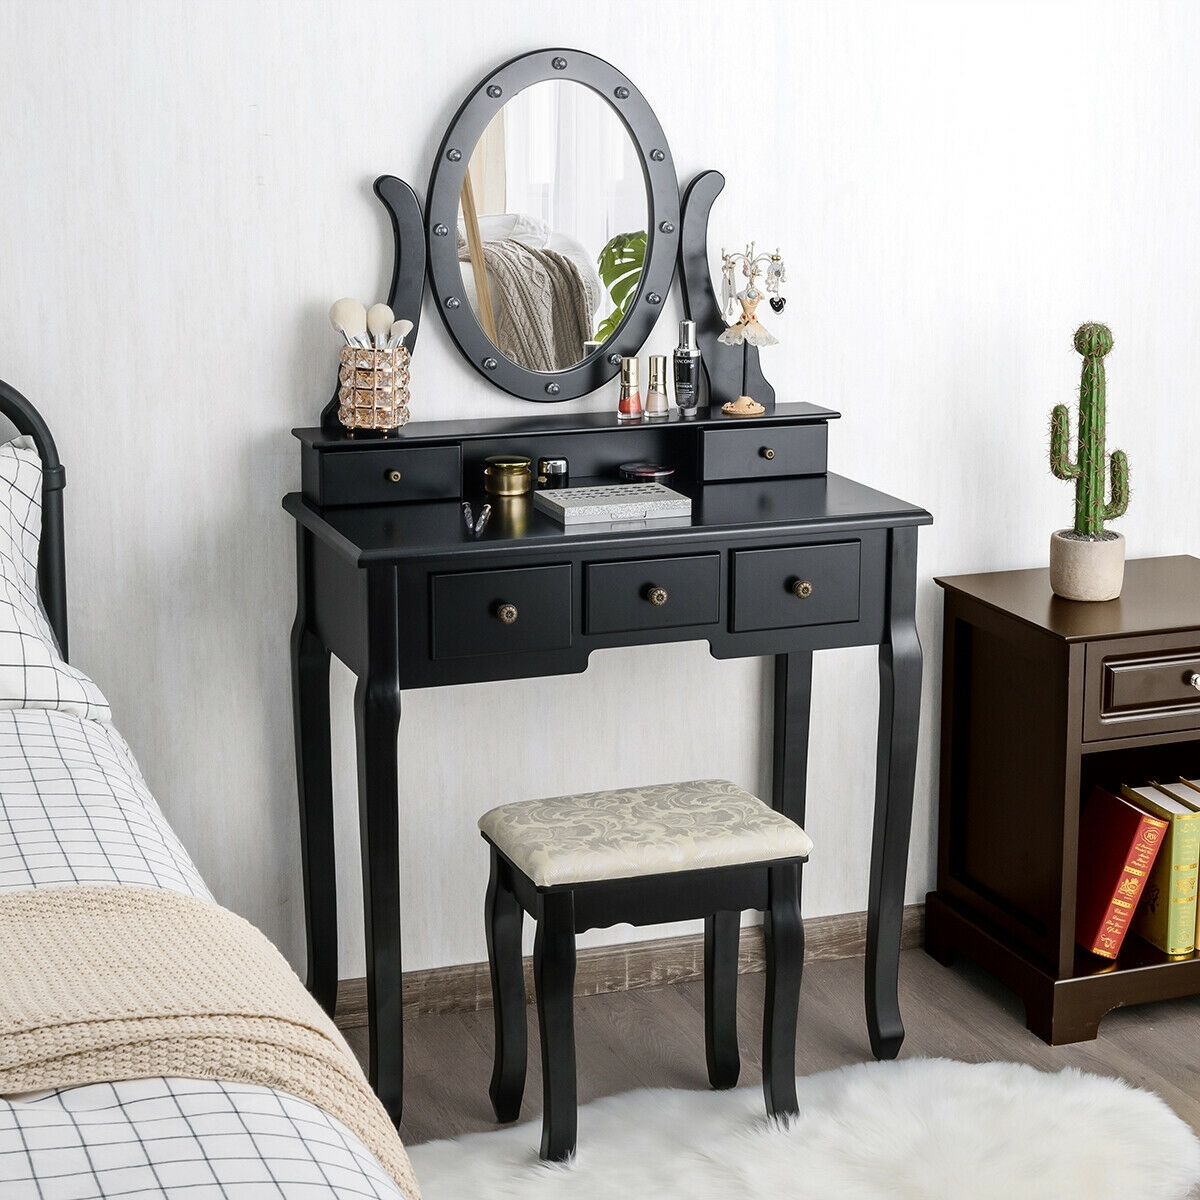 Image of 5 Drawers Vanity Table Stool Set with 12-LED Bulbs